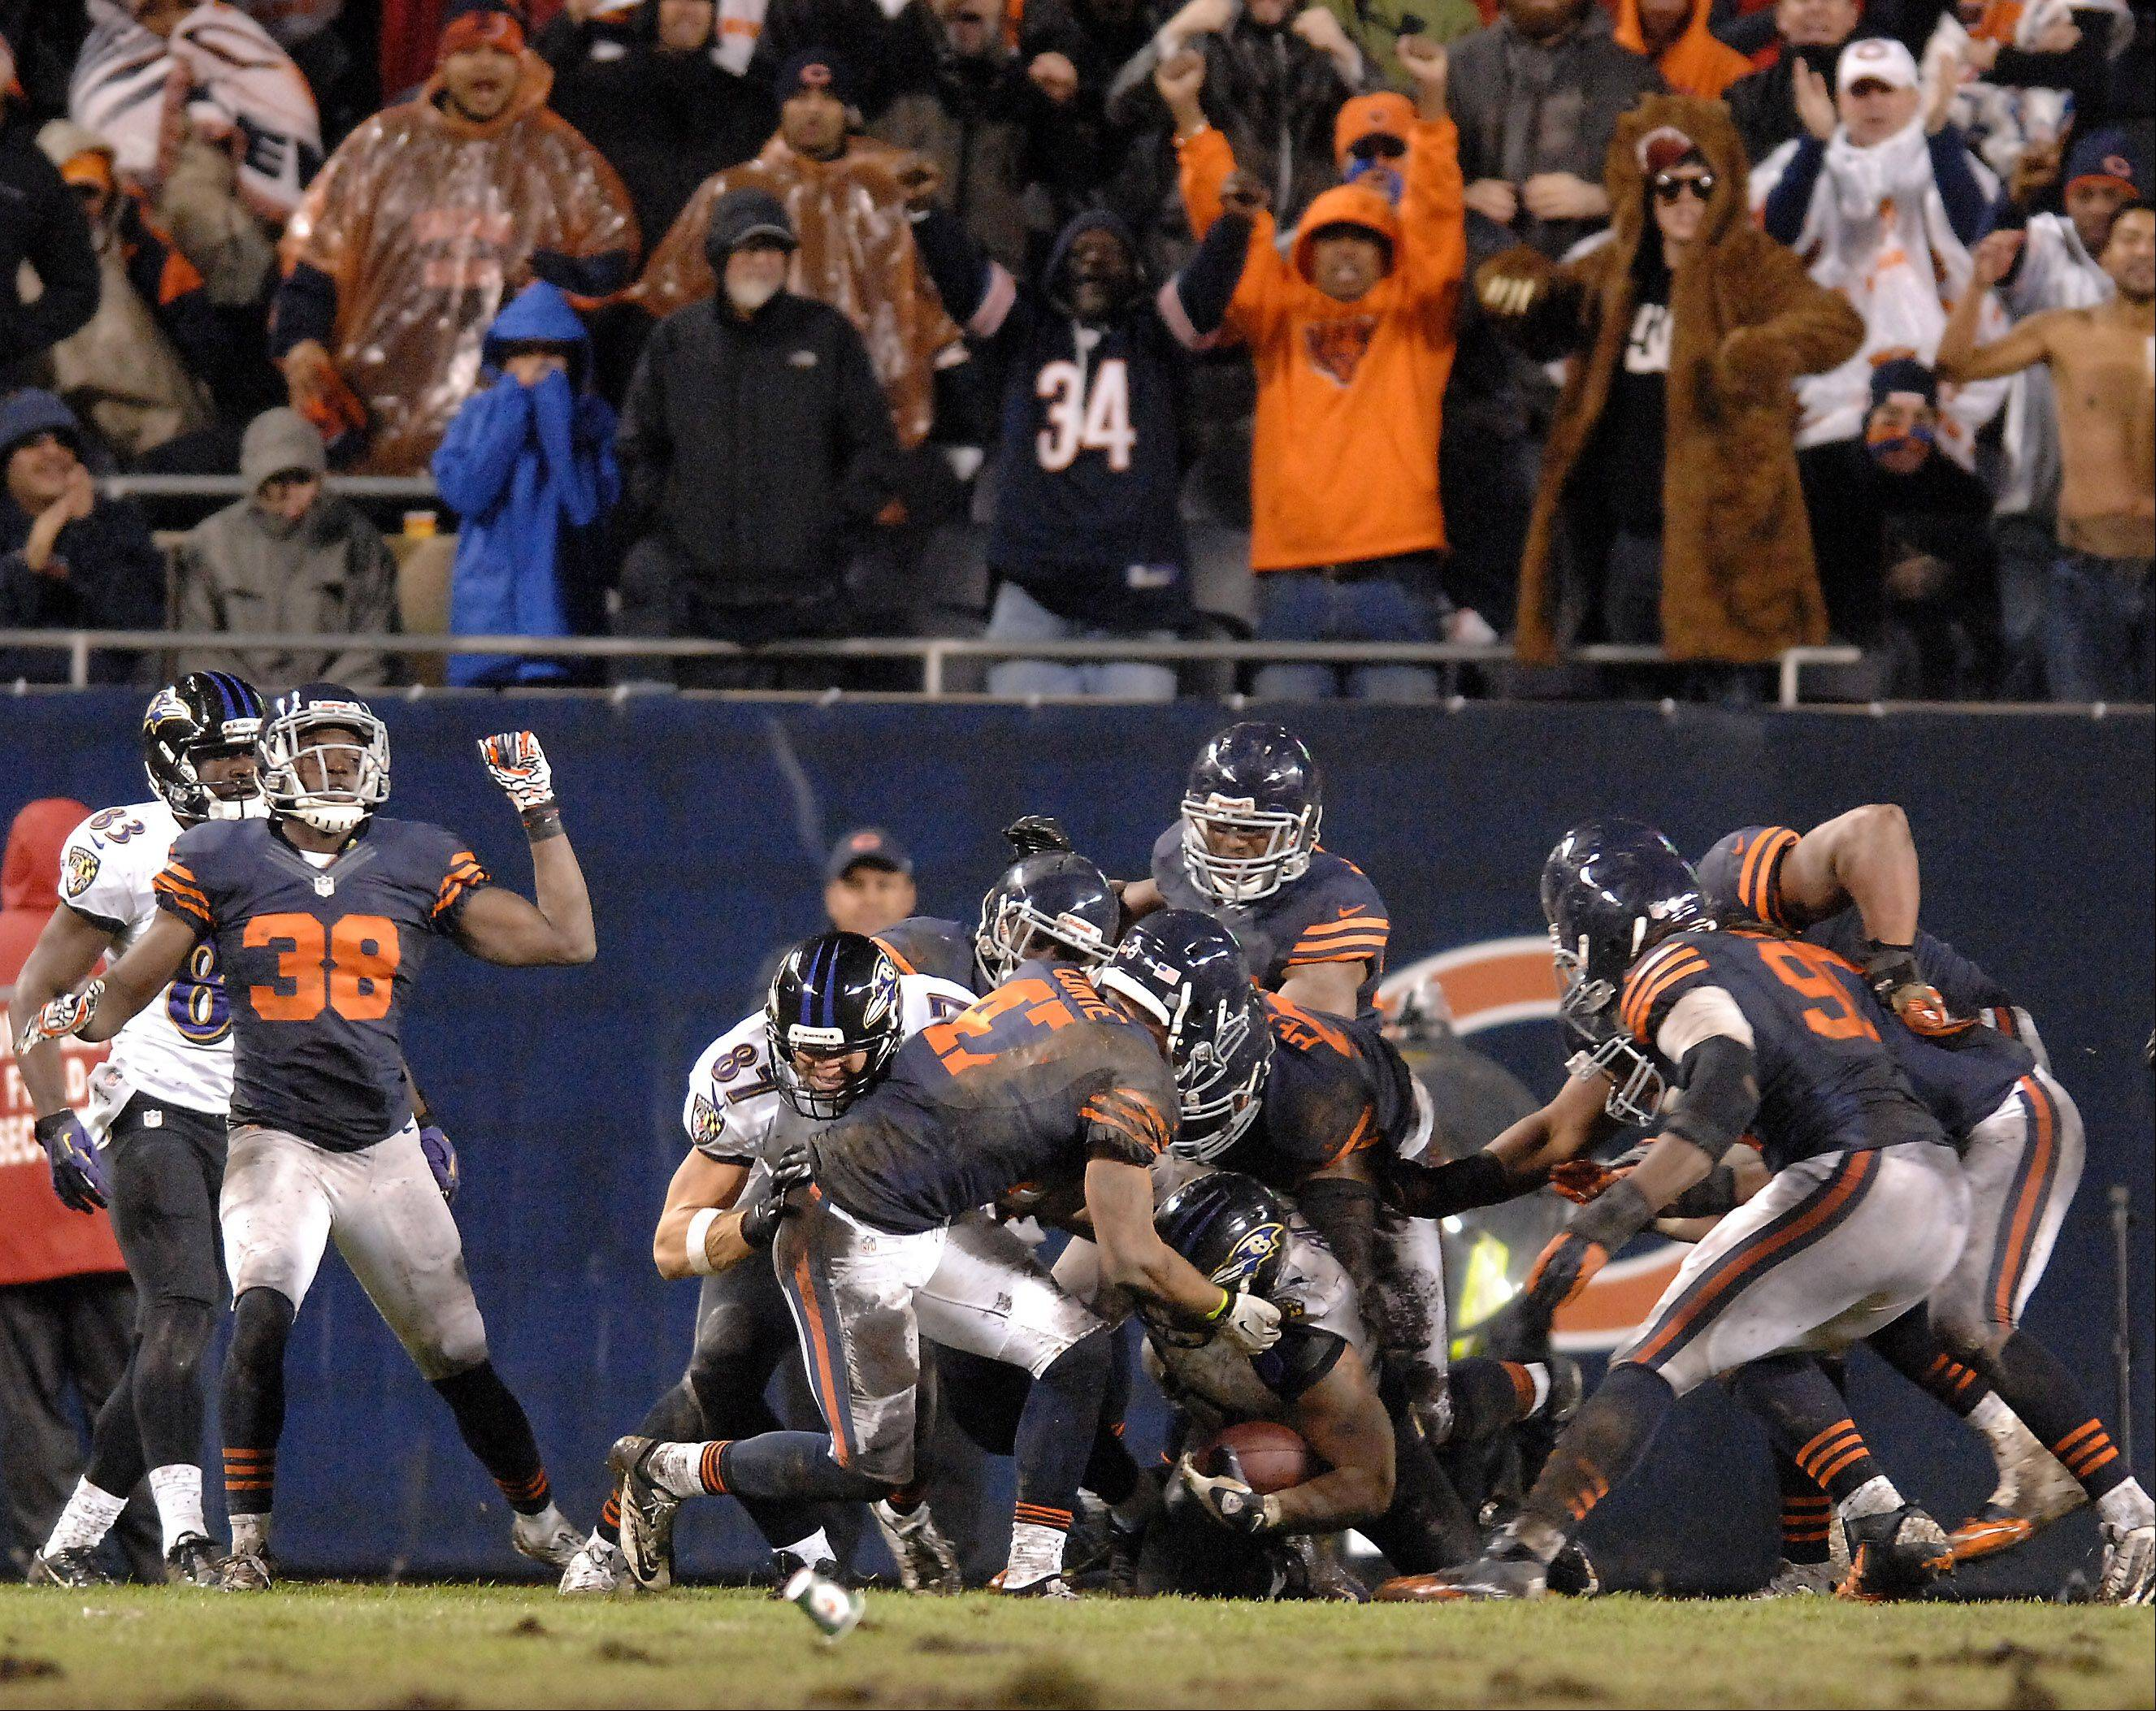 Bears defense shows up at opportune time